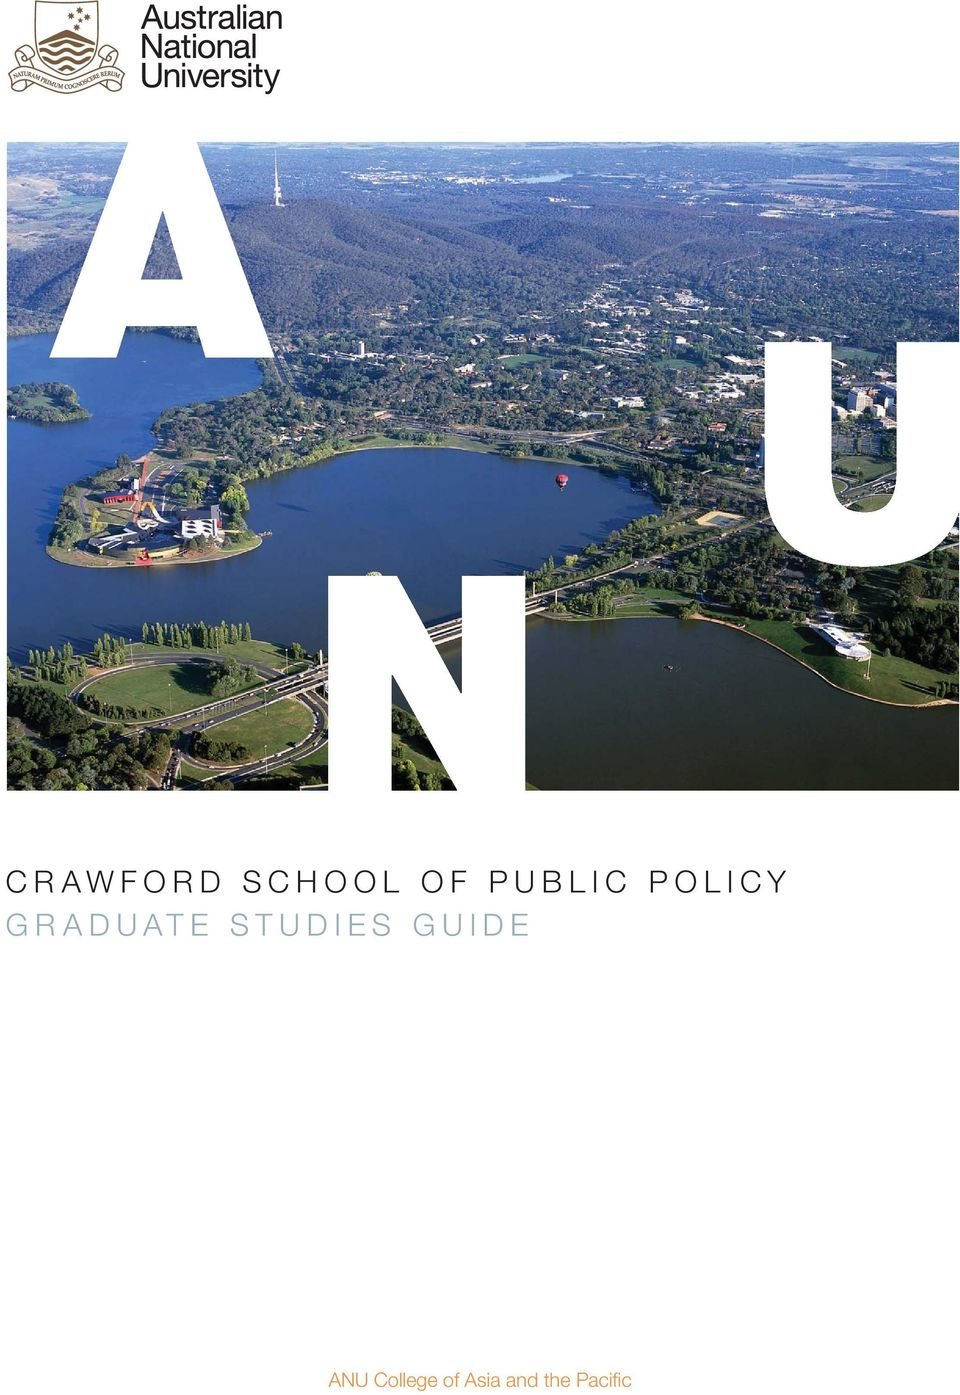 anu postgraduate coursework application Cricos provider number 00025b international student application for graduate coursework studies general instructions • please do not use this form if: – you are applying for study abroad, for english language studies or to be an exchange student.